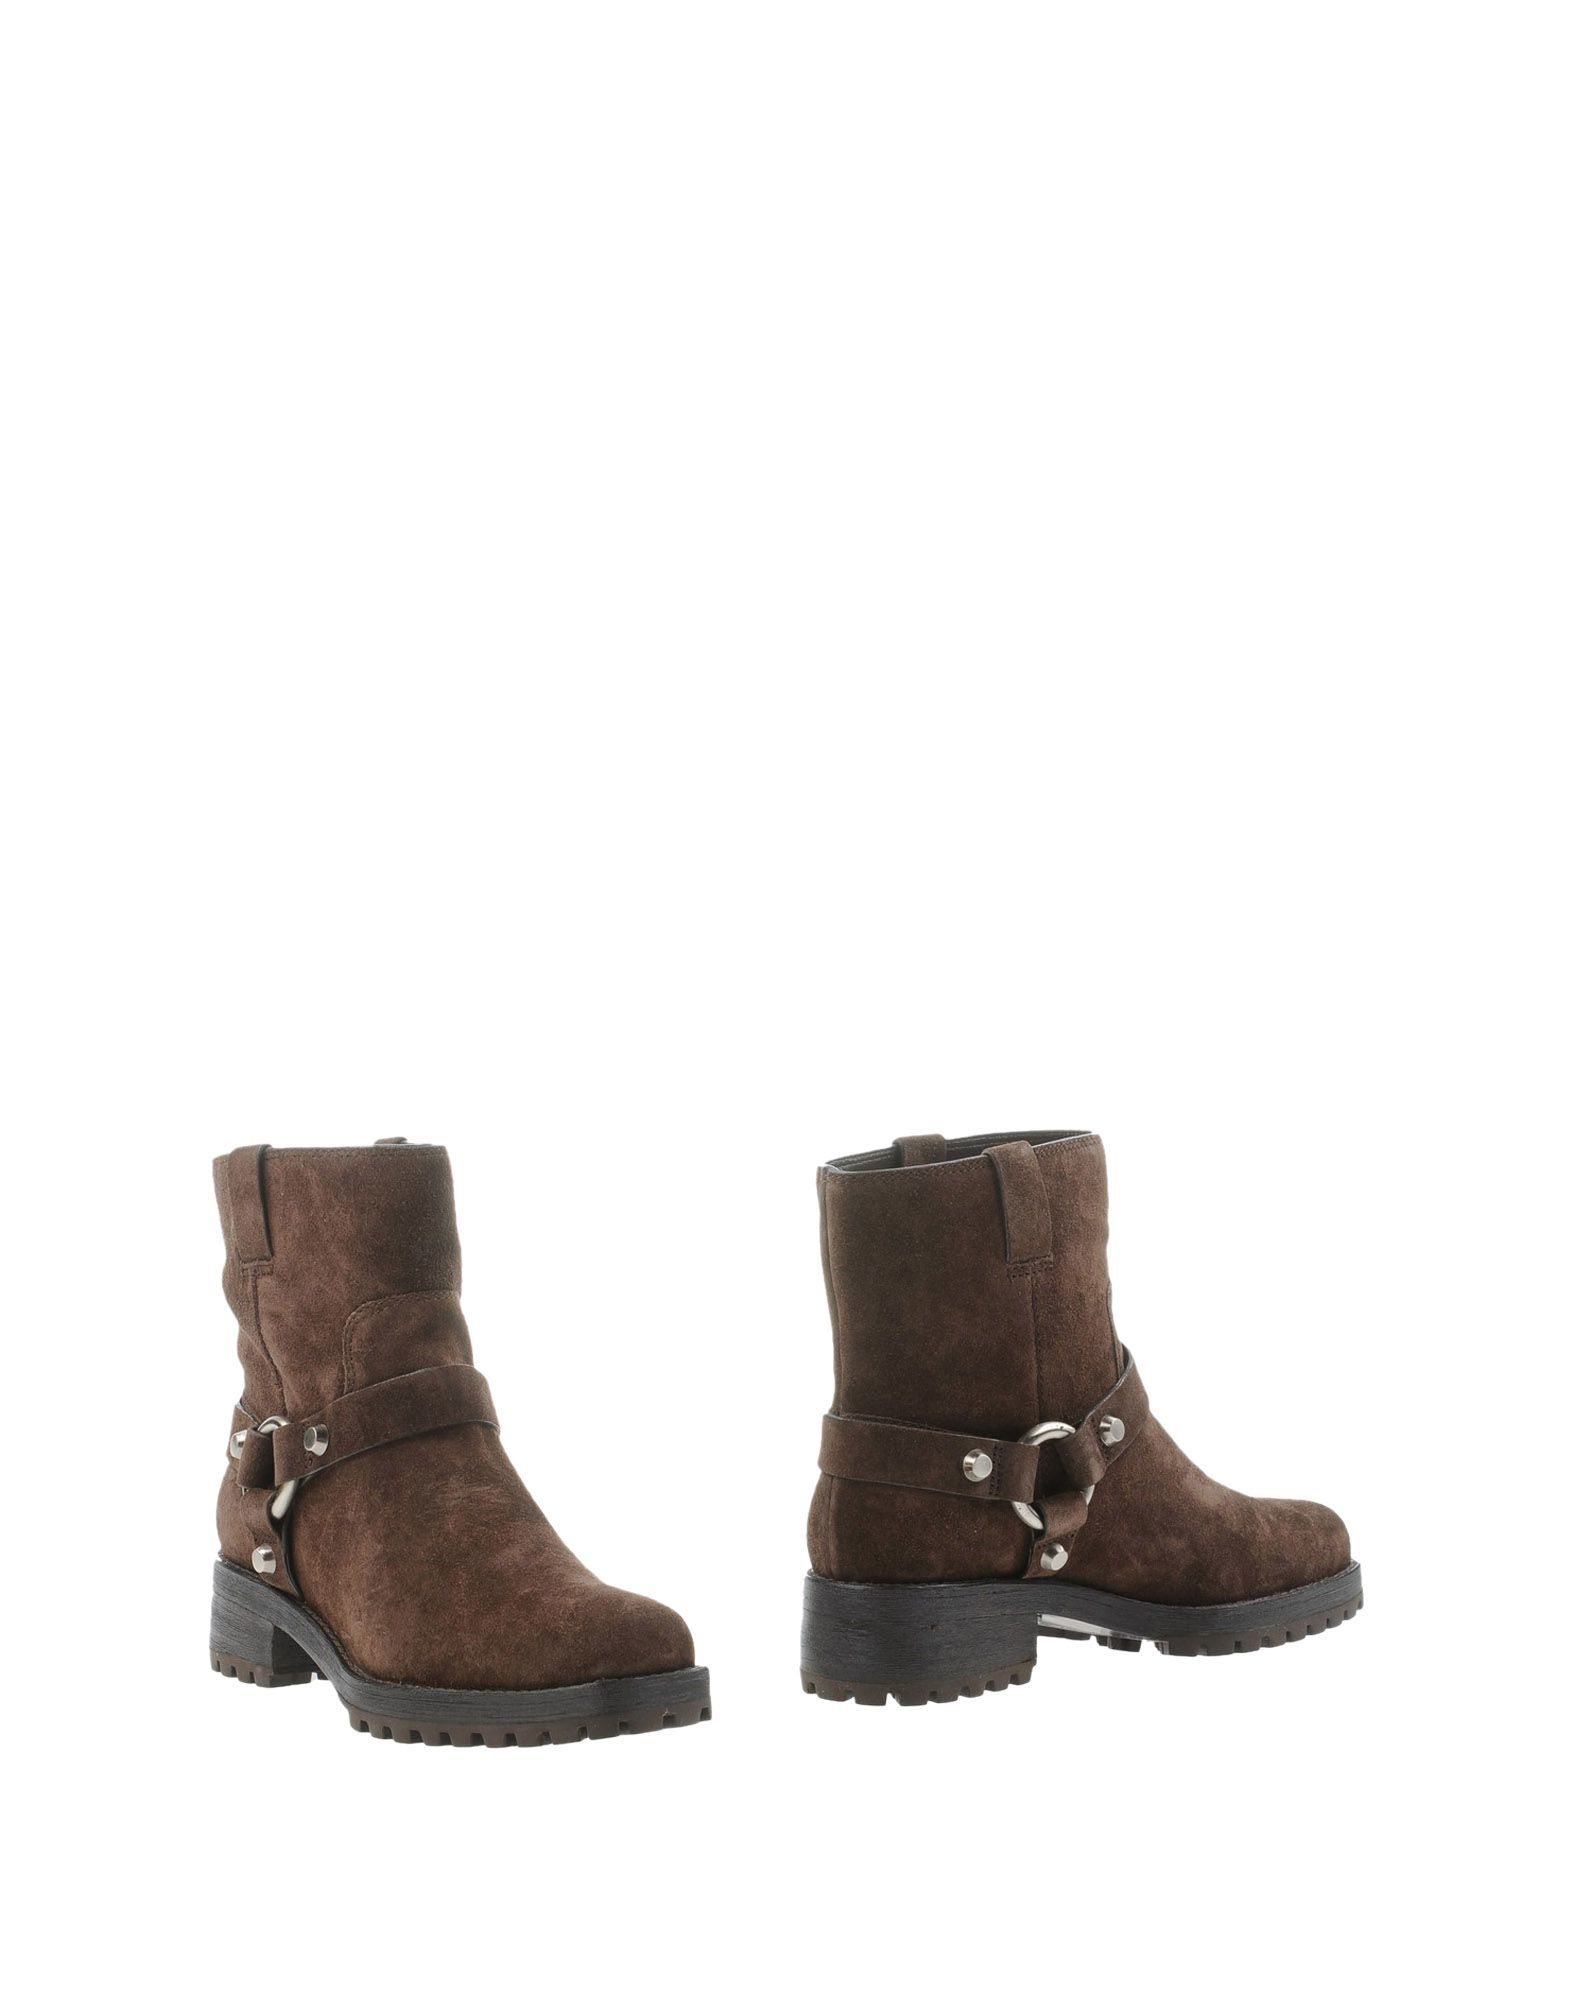 michael kors ankle boots in brown lyst